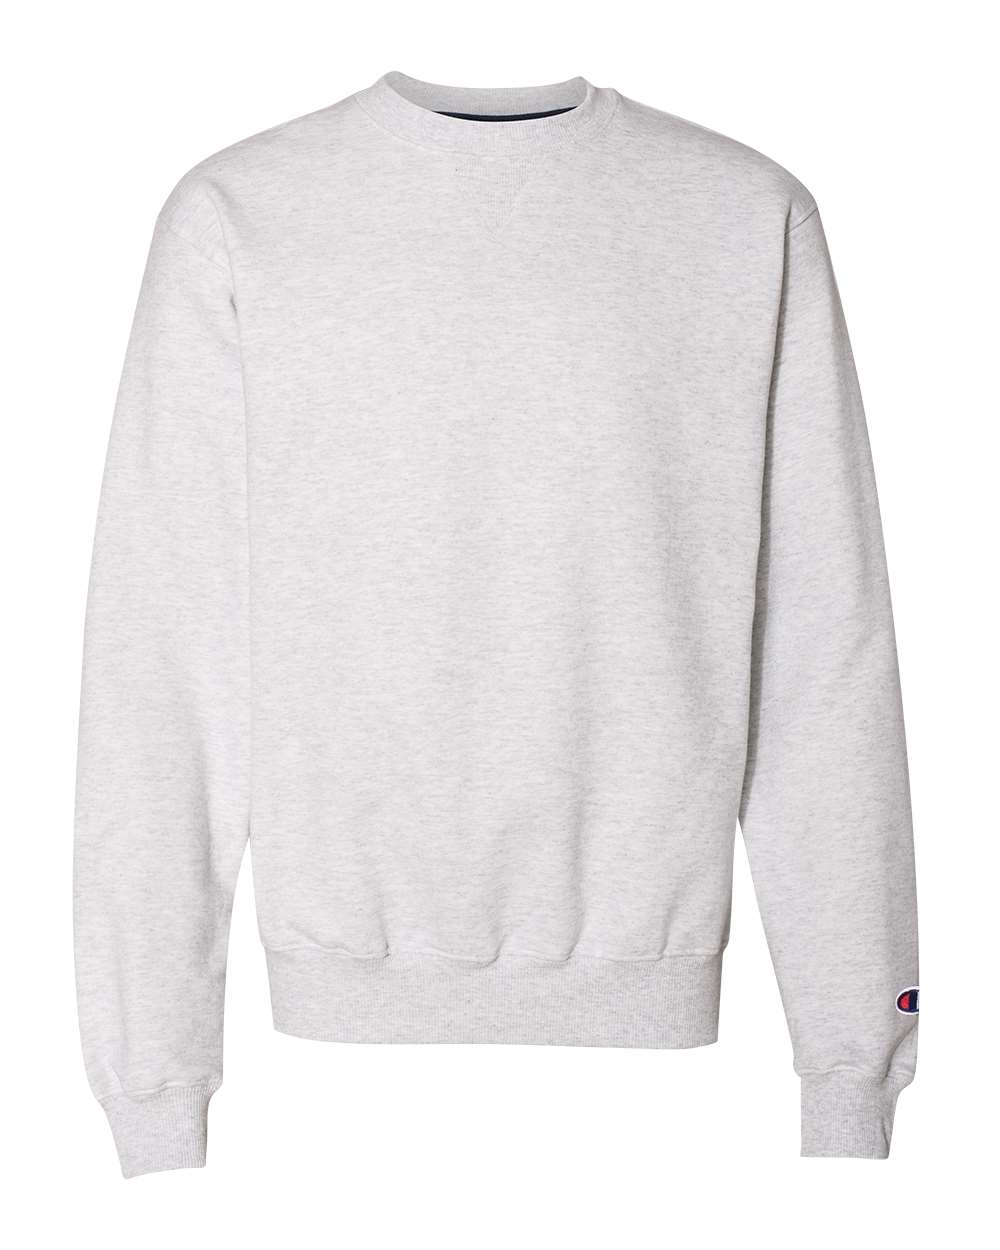 Champion-Mens-Cotton-Max-Crewneck-Sweatshirt-Pullover-S178-up-to-3XL miniature 15